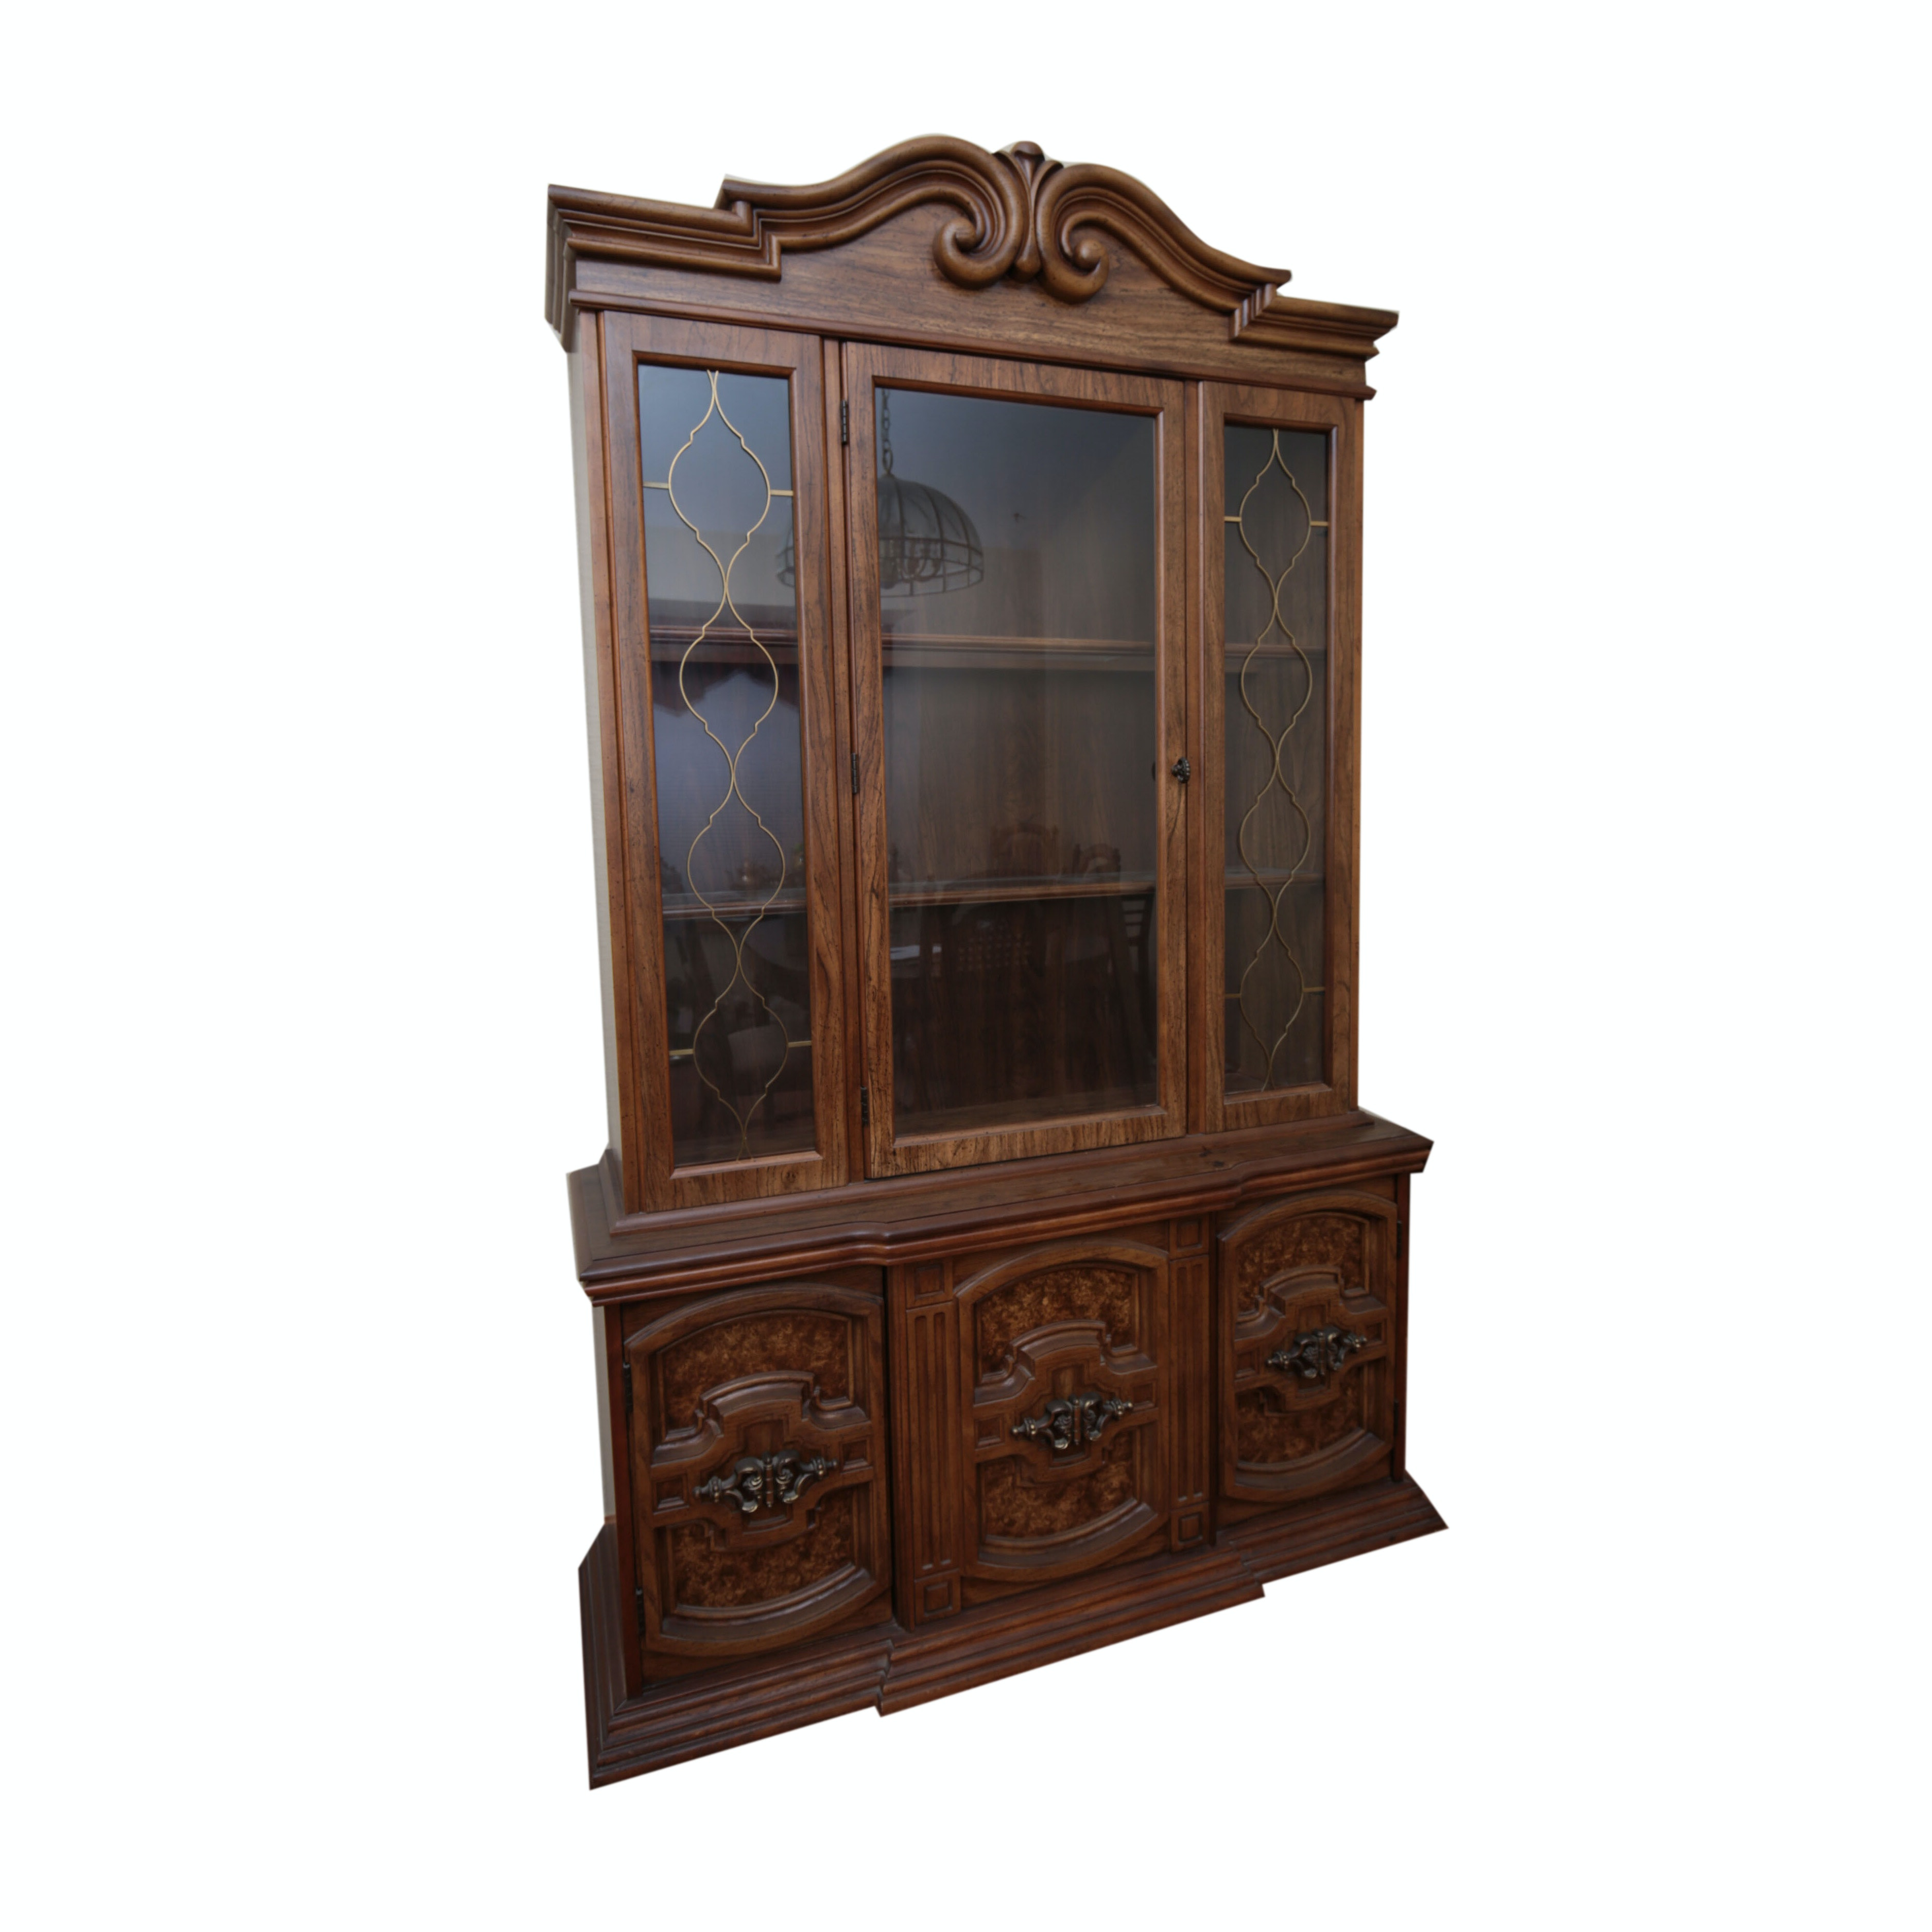 Large Display Cabinet in Pecan Finish